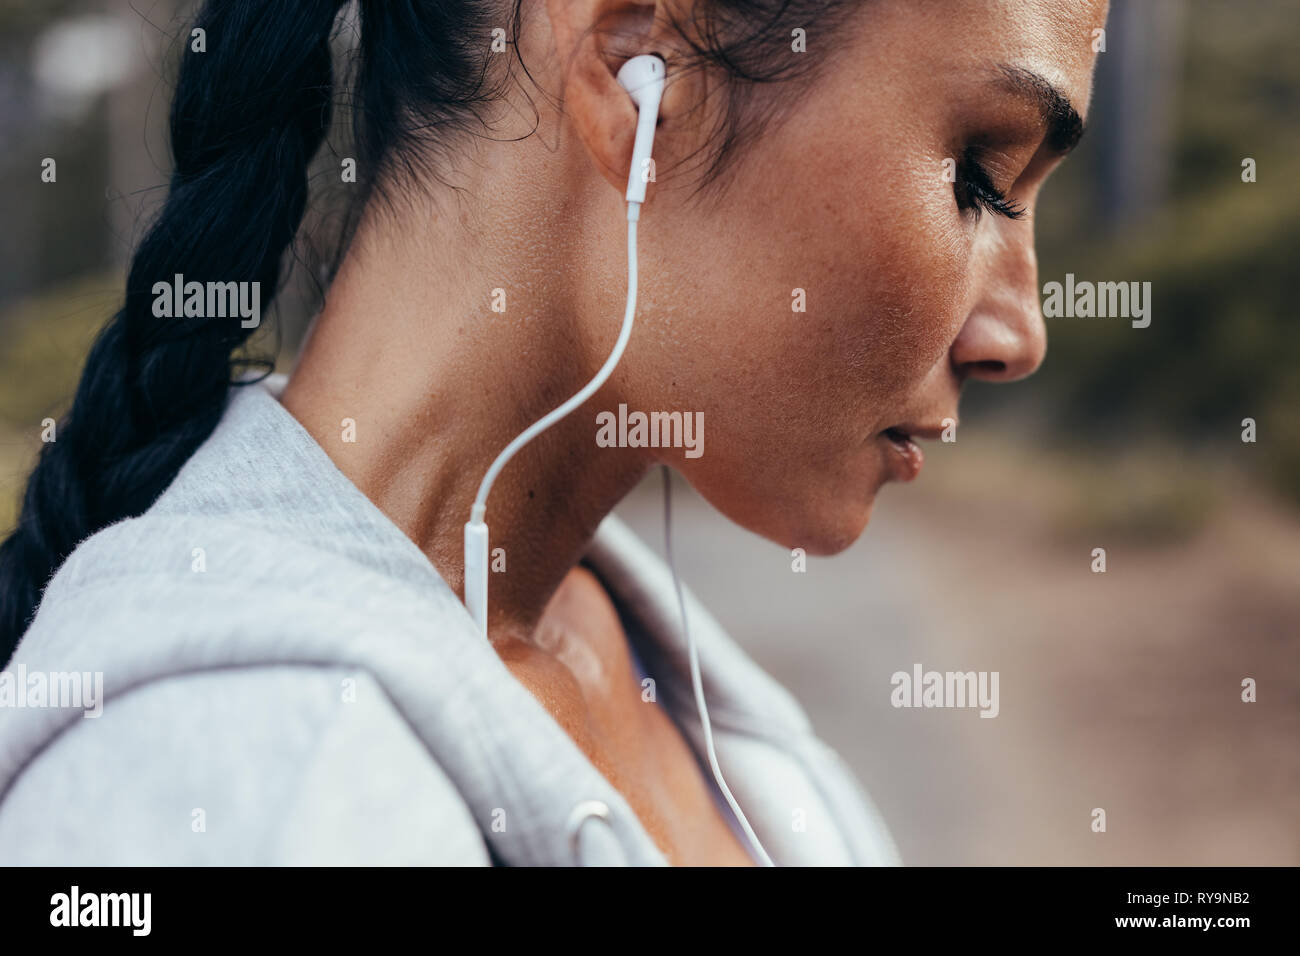 Close up of runner with sweat standing outdoors after her workout. Tired fitness female with earphones resting after exercising outdoors. - Stock Image